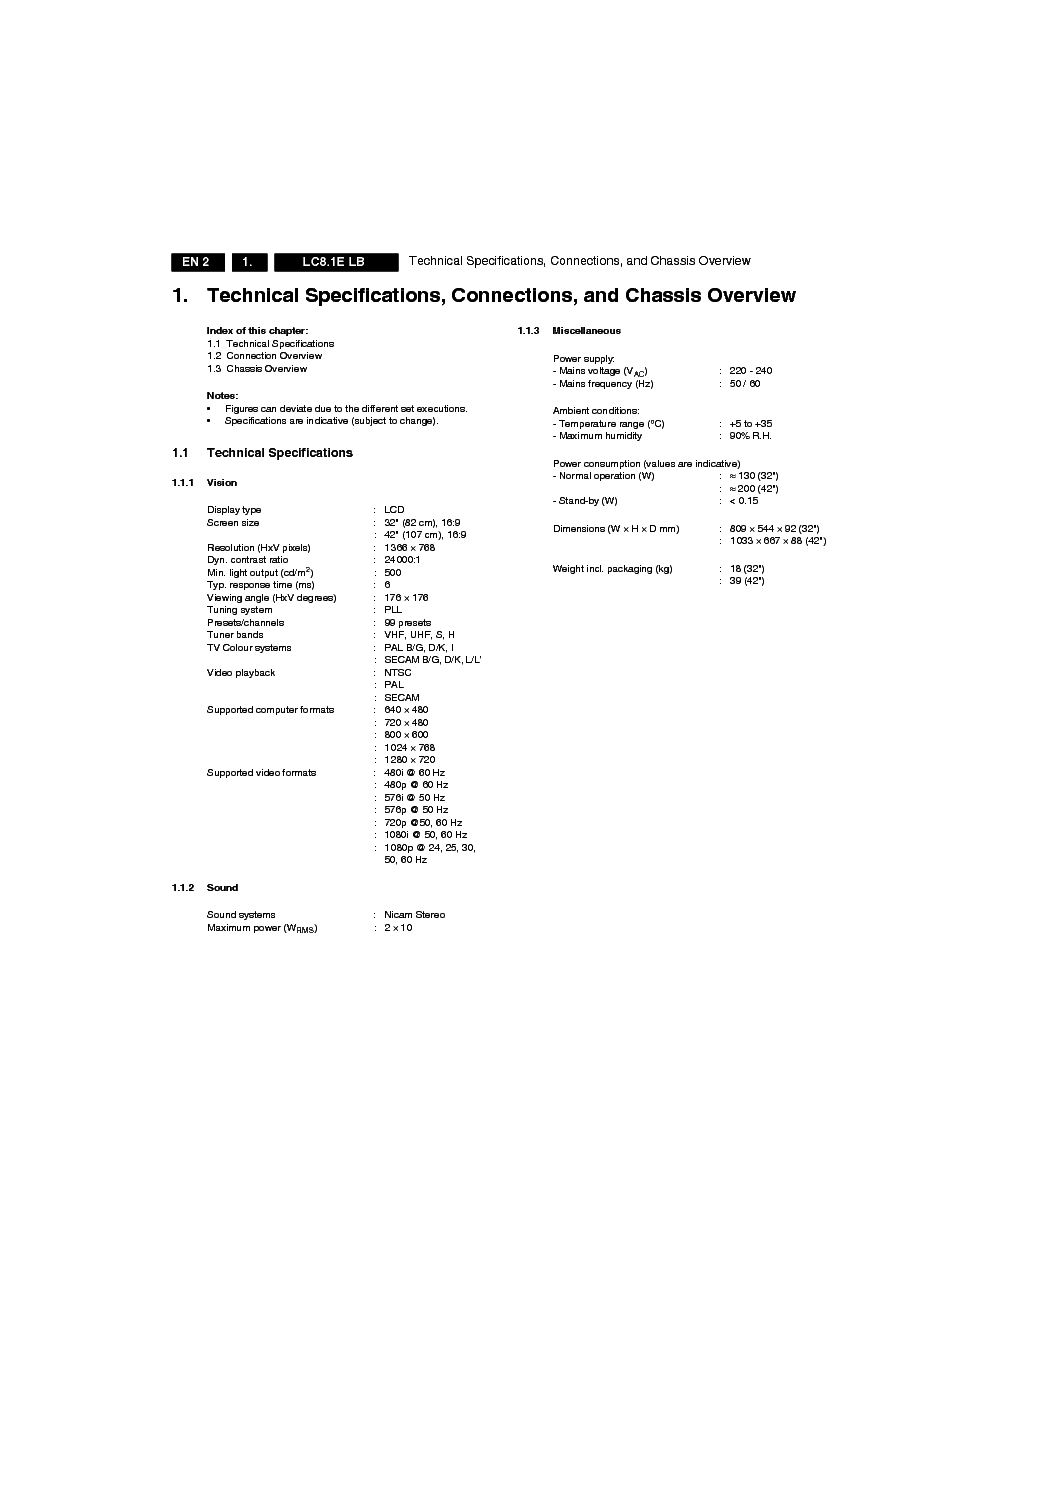 PHILIPS CHASSIS LC8.1E LB service manual (2nd page)